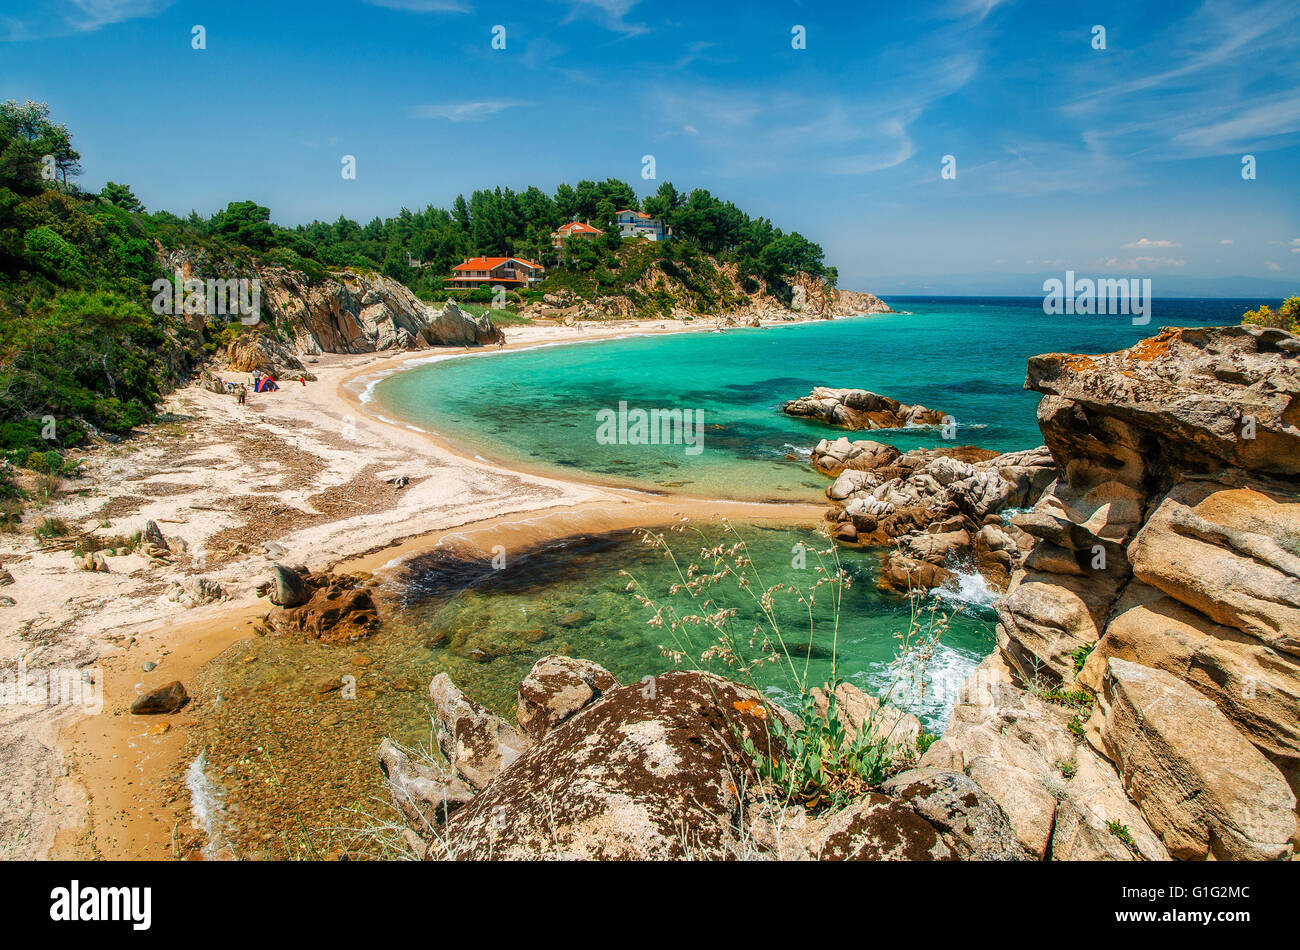 Wild beautiful beach with turquoise water in Vourvourou, Sithonia, Greece - Stock Image